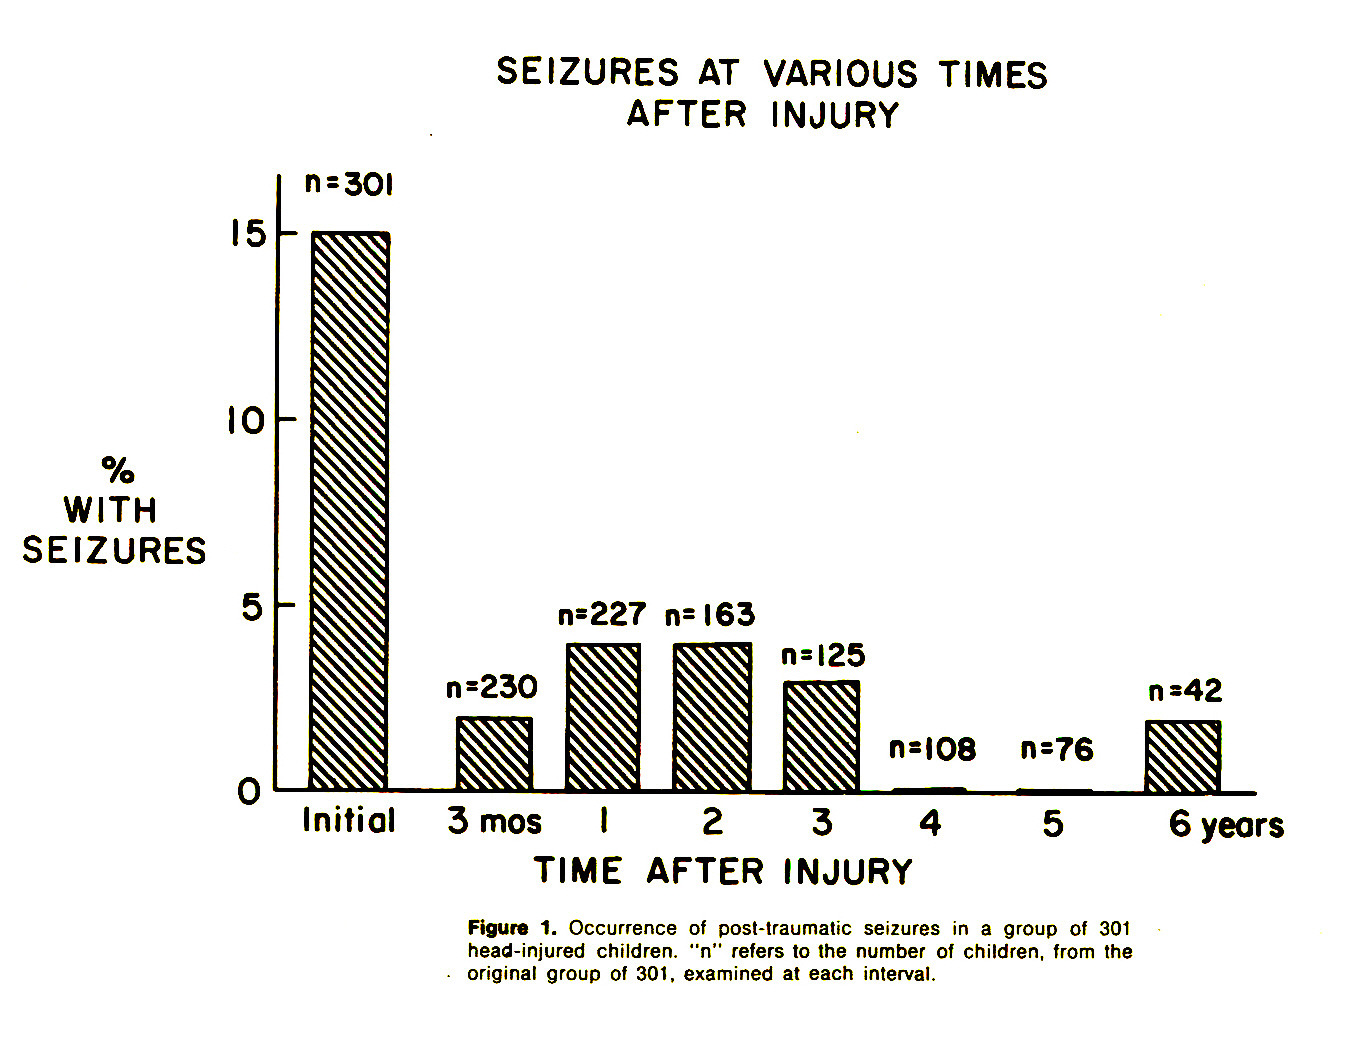 """Figure 1. Occurrence of posl-lraumatic seizures in a group of 301 head-injured children, """"n"""" refers to the number of children, from the - original group of 301, examined at each interval."""